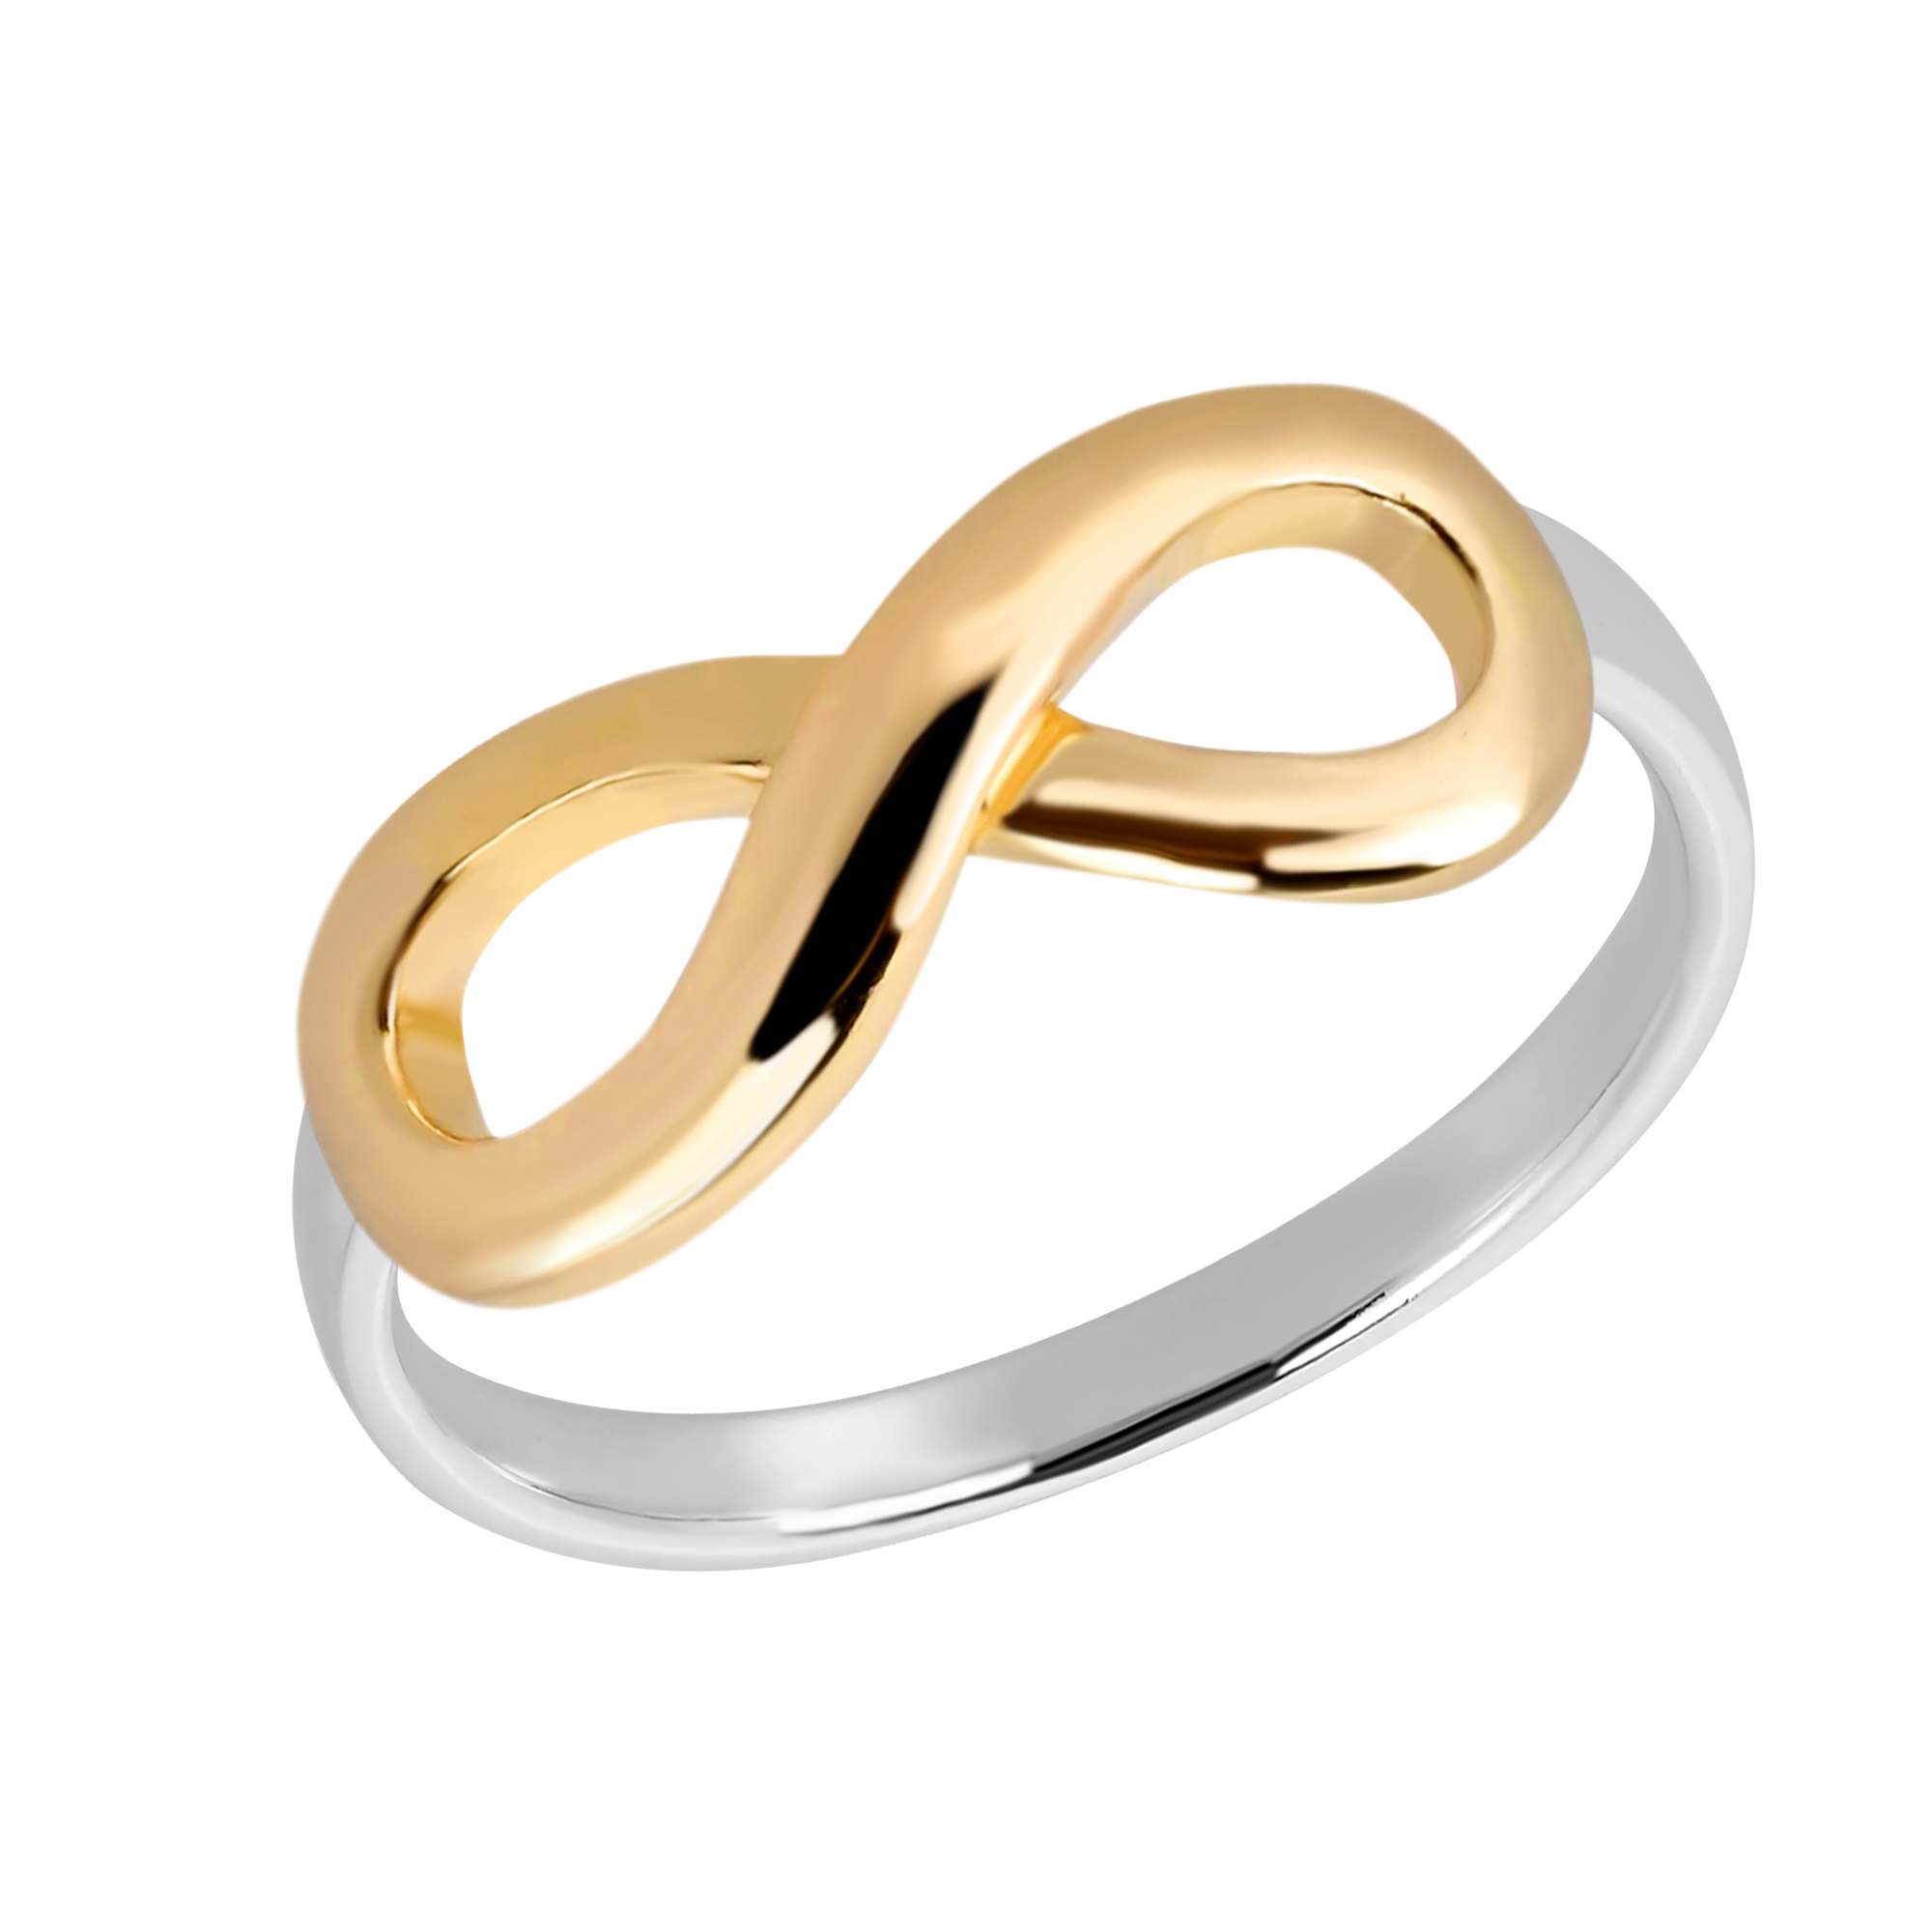 Two tone endless love infinity gold vermeil over sterling silver the infinity symbol is an ancient symbol which represents timelessness or eternity artisan katsaya from thailand handcrafted this eye catching sterling buycottarizona Choice Image